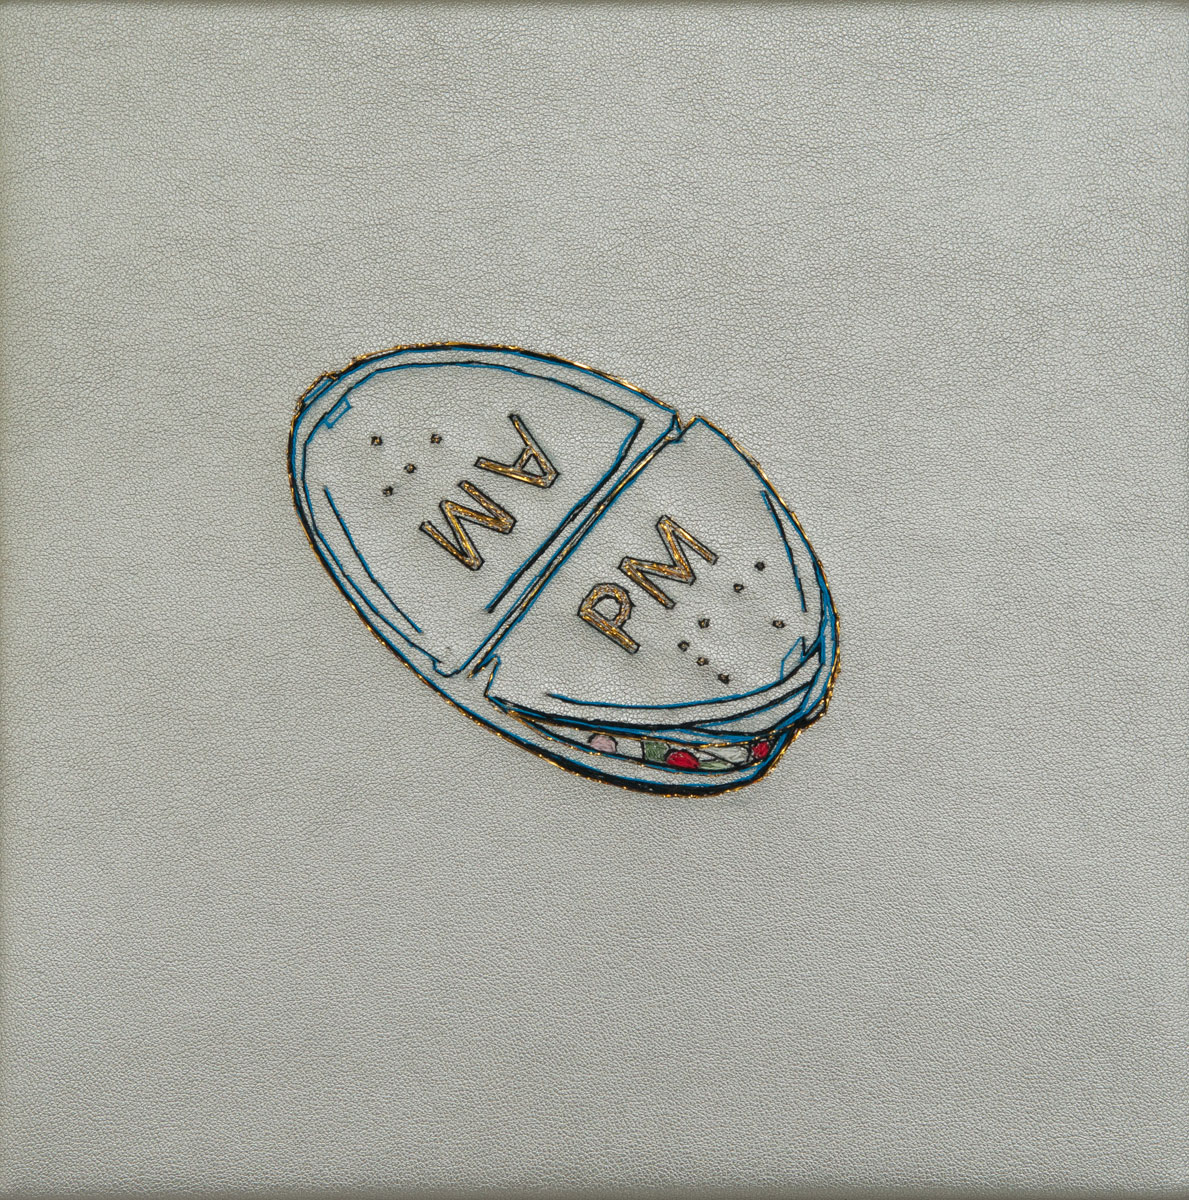 A.M./P.M., hand stitching on silver vinyl, 8in x 8in